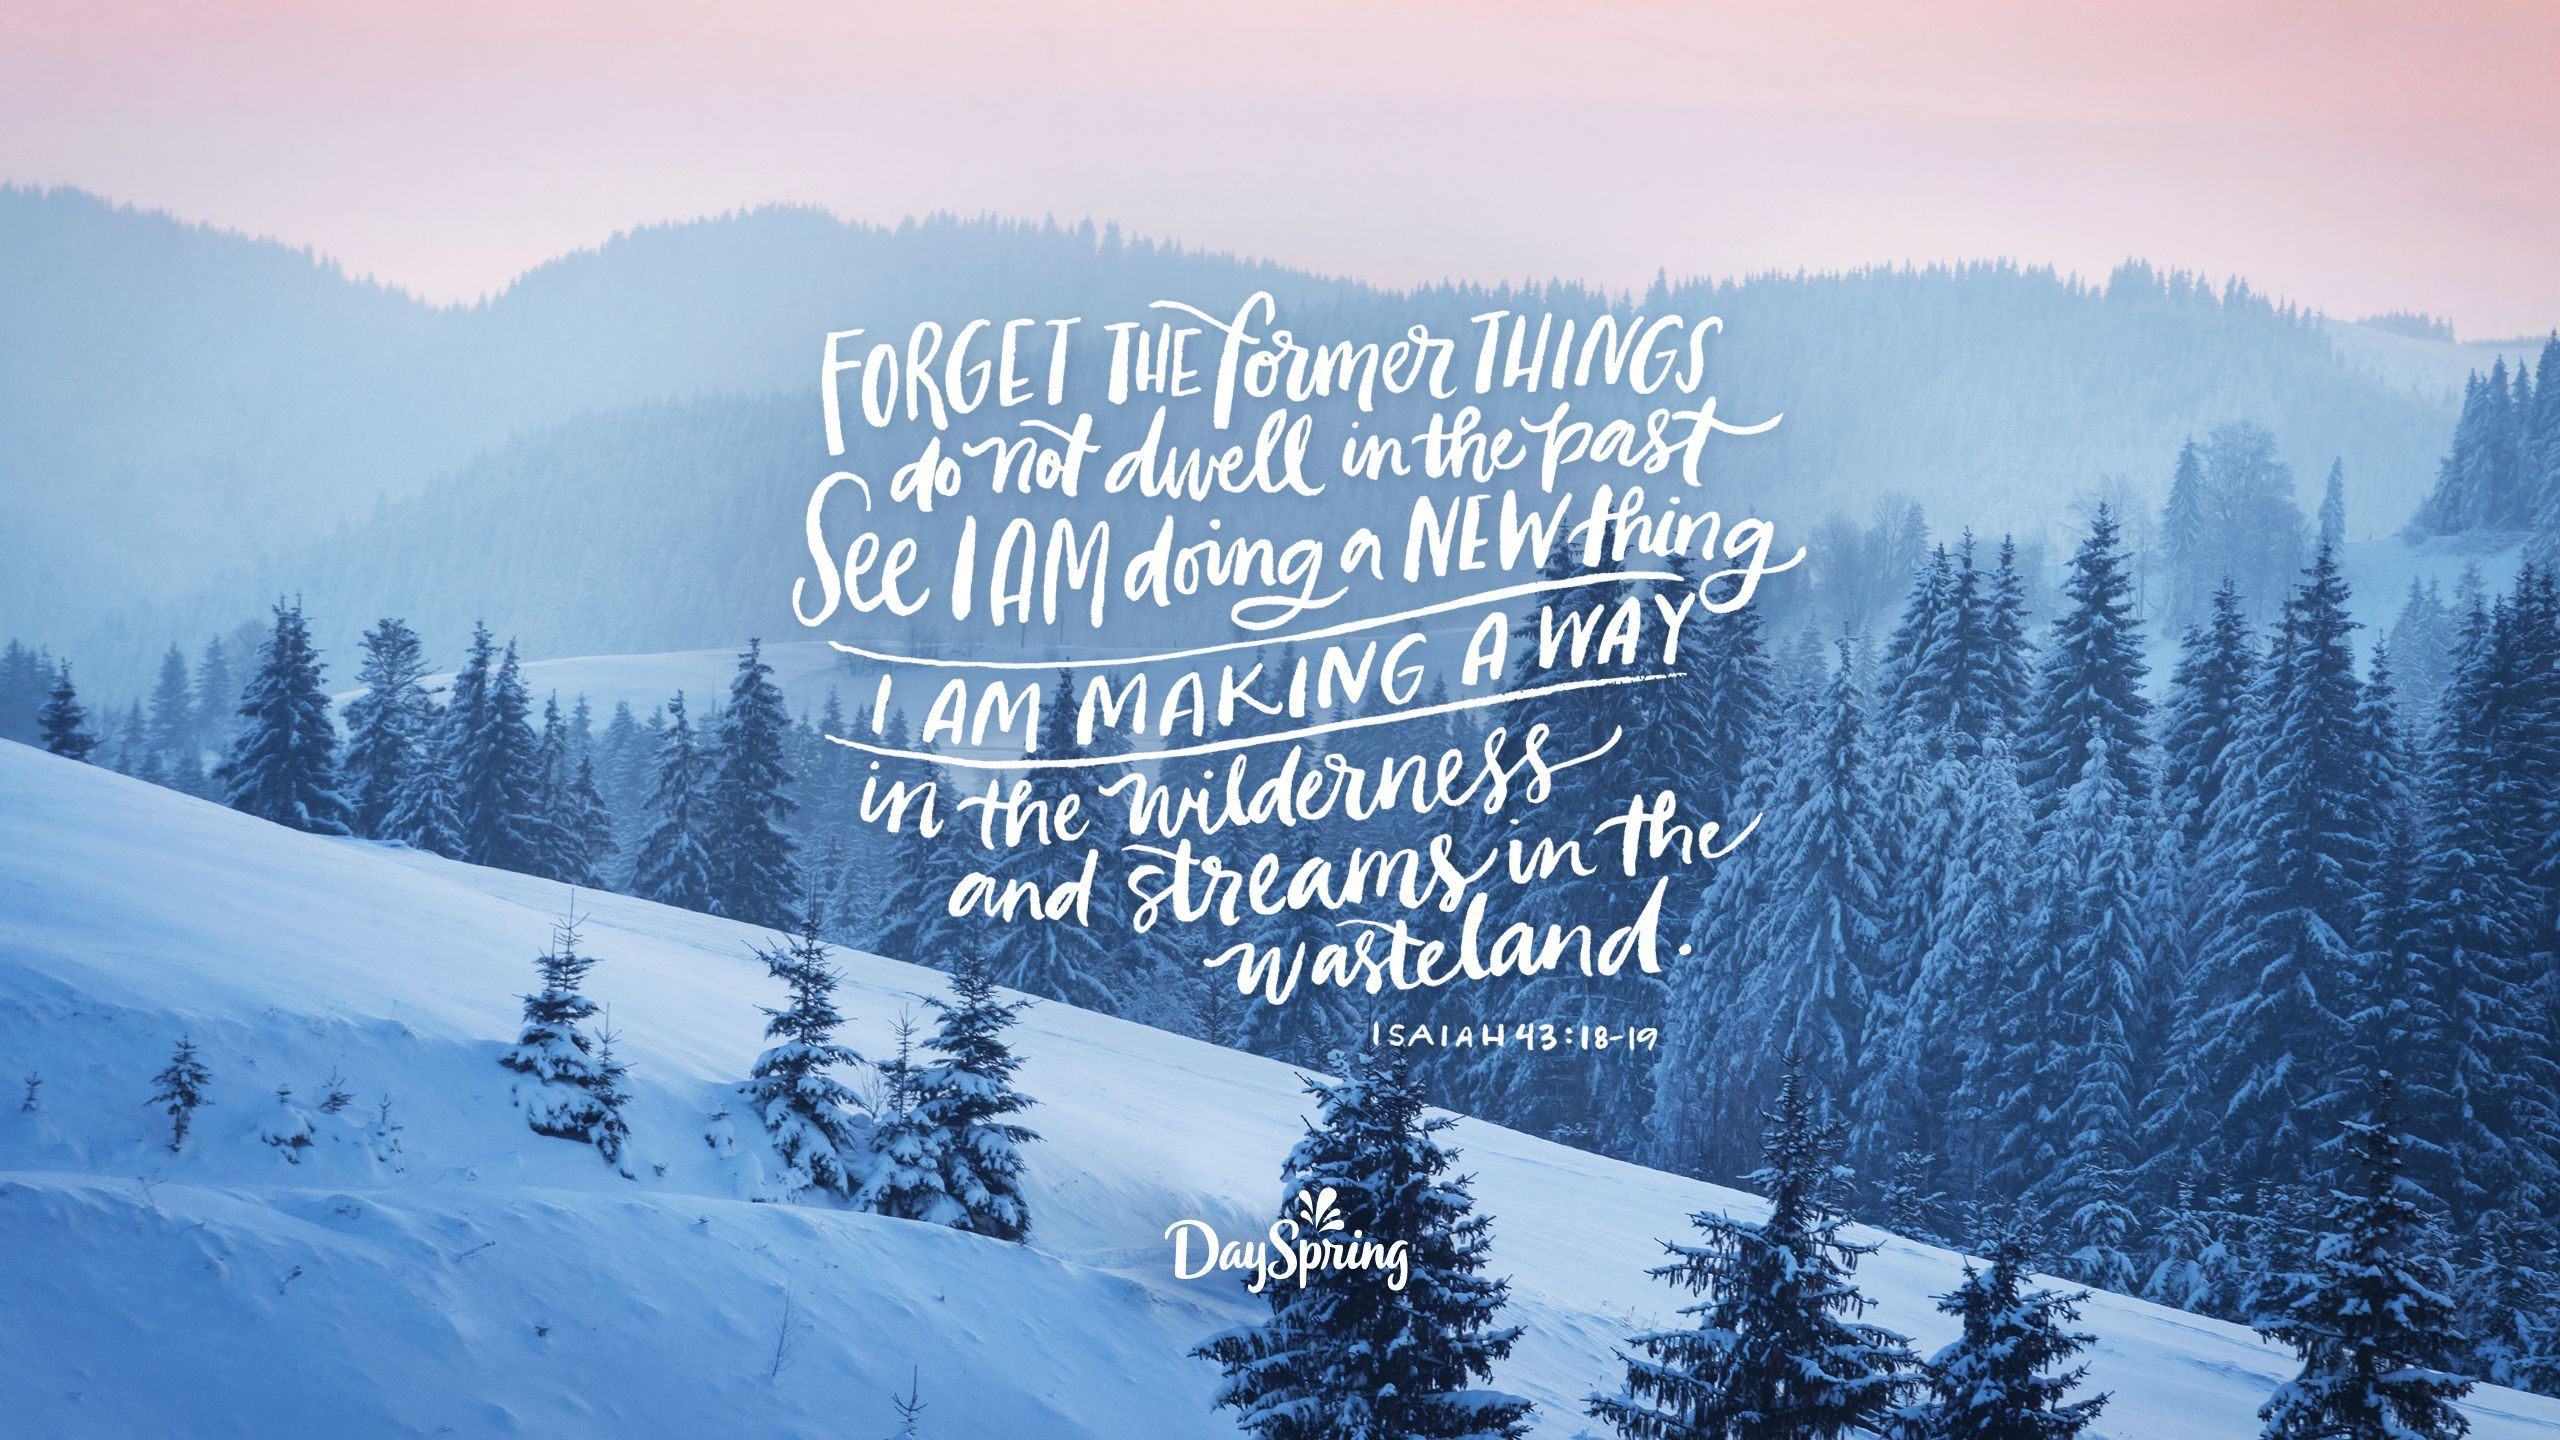 Bible Verses Hd Posted By Zoey Johnson